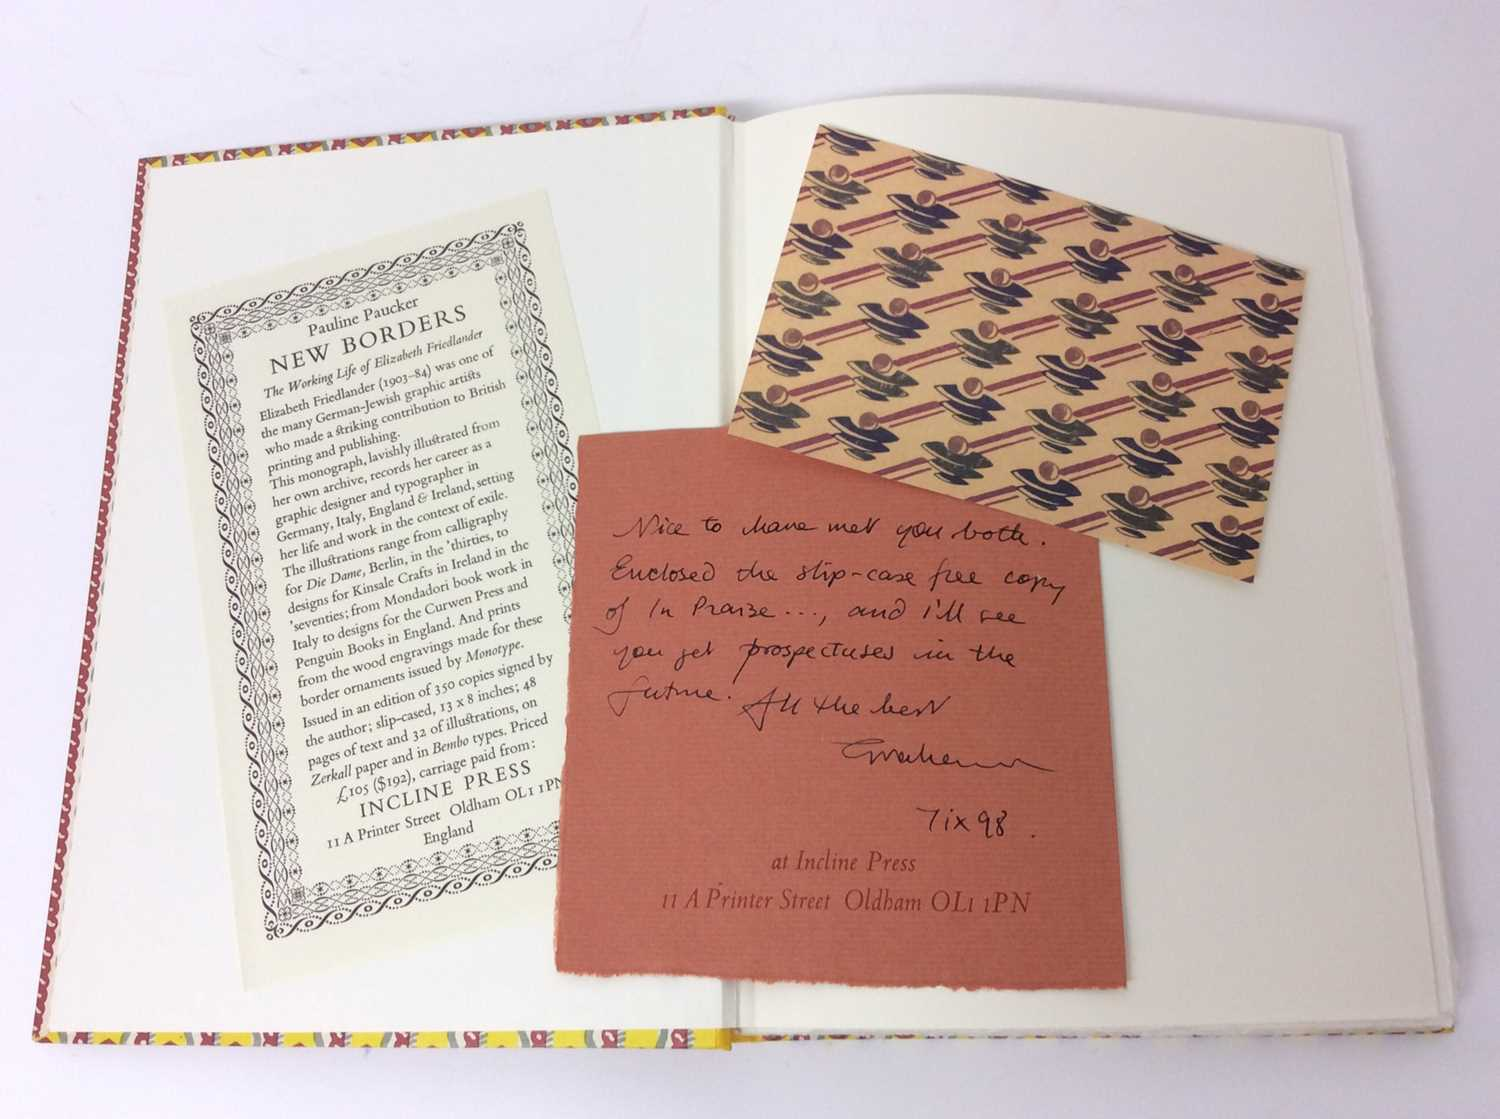 In Praise of Patterned Papers, Incline Press, 200/300 - Image 2 of 12